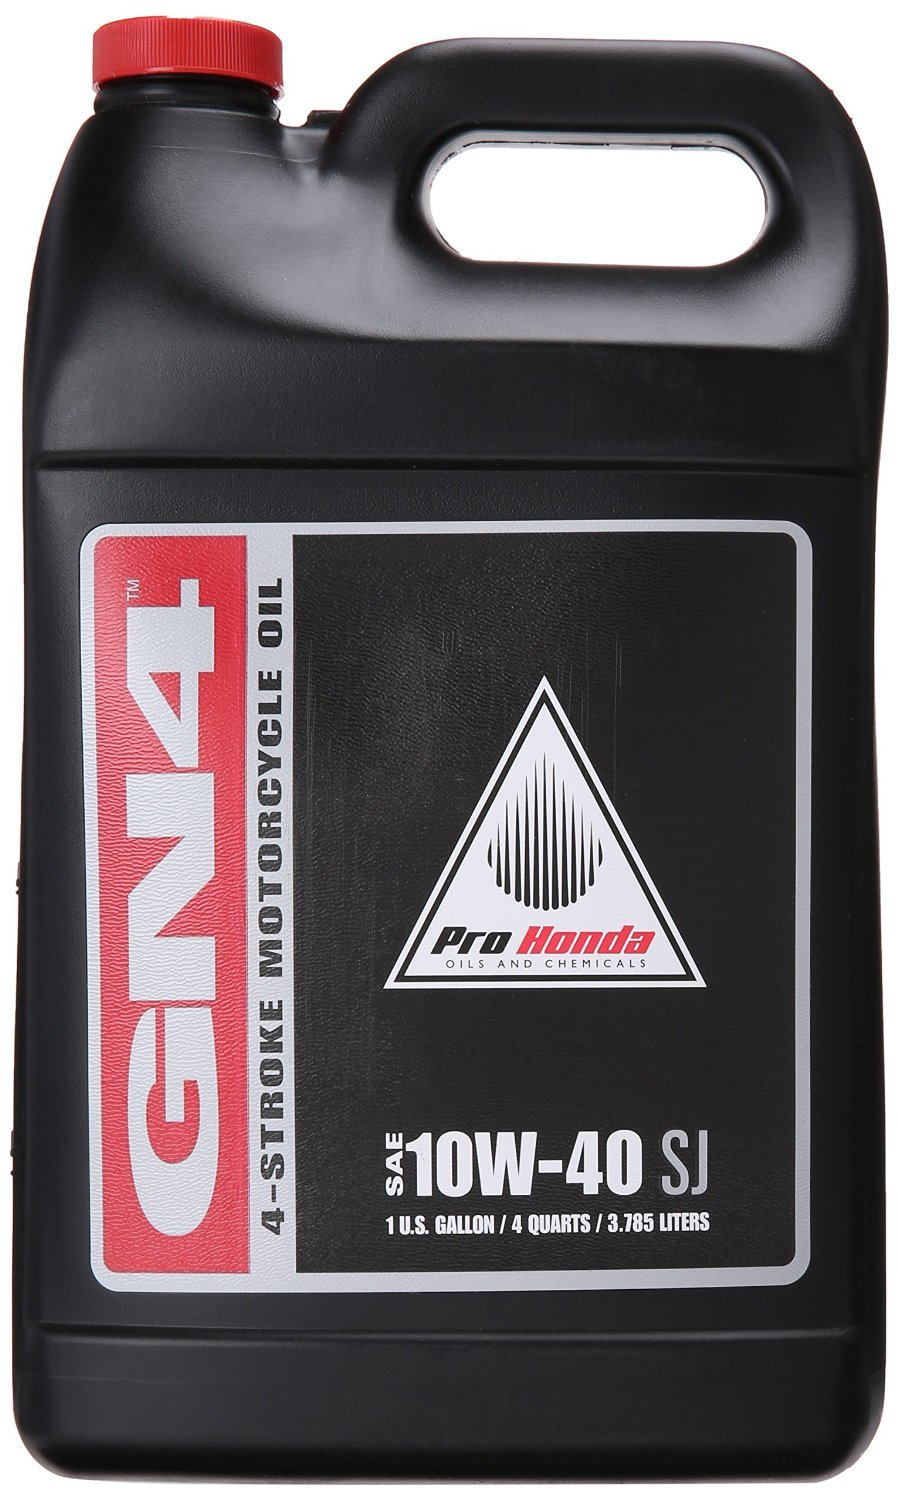 Best rated in motor oils helpful customer reviews for Top 1 motor oil review